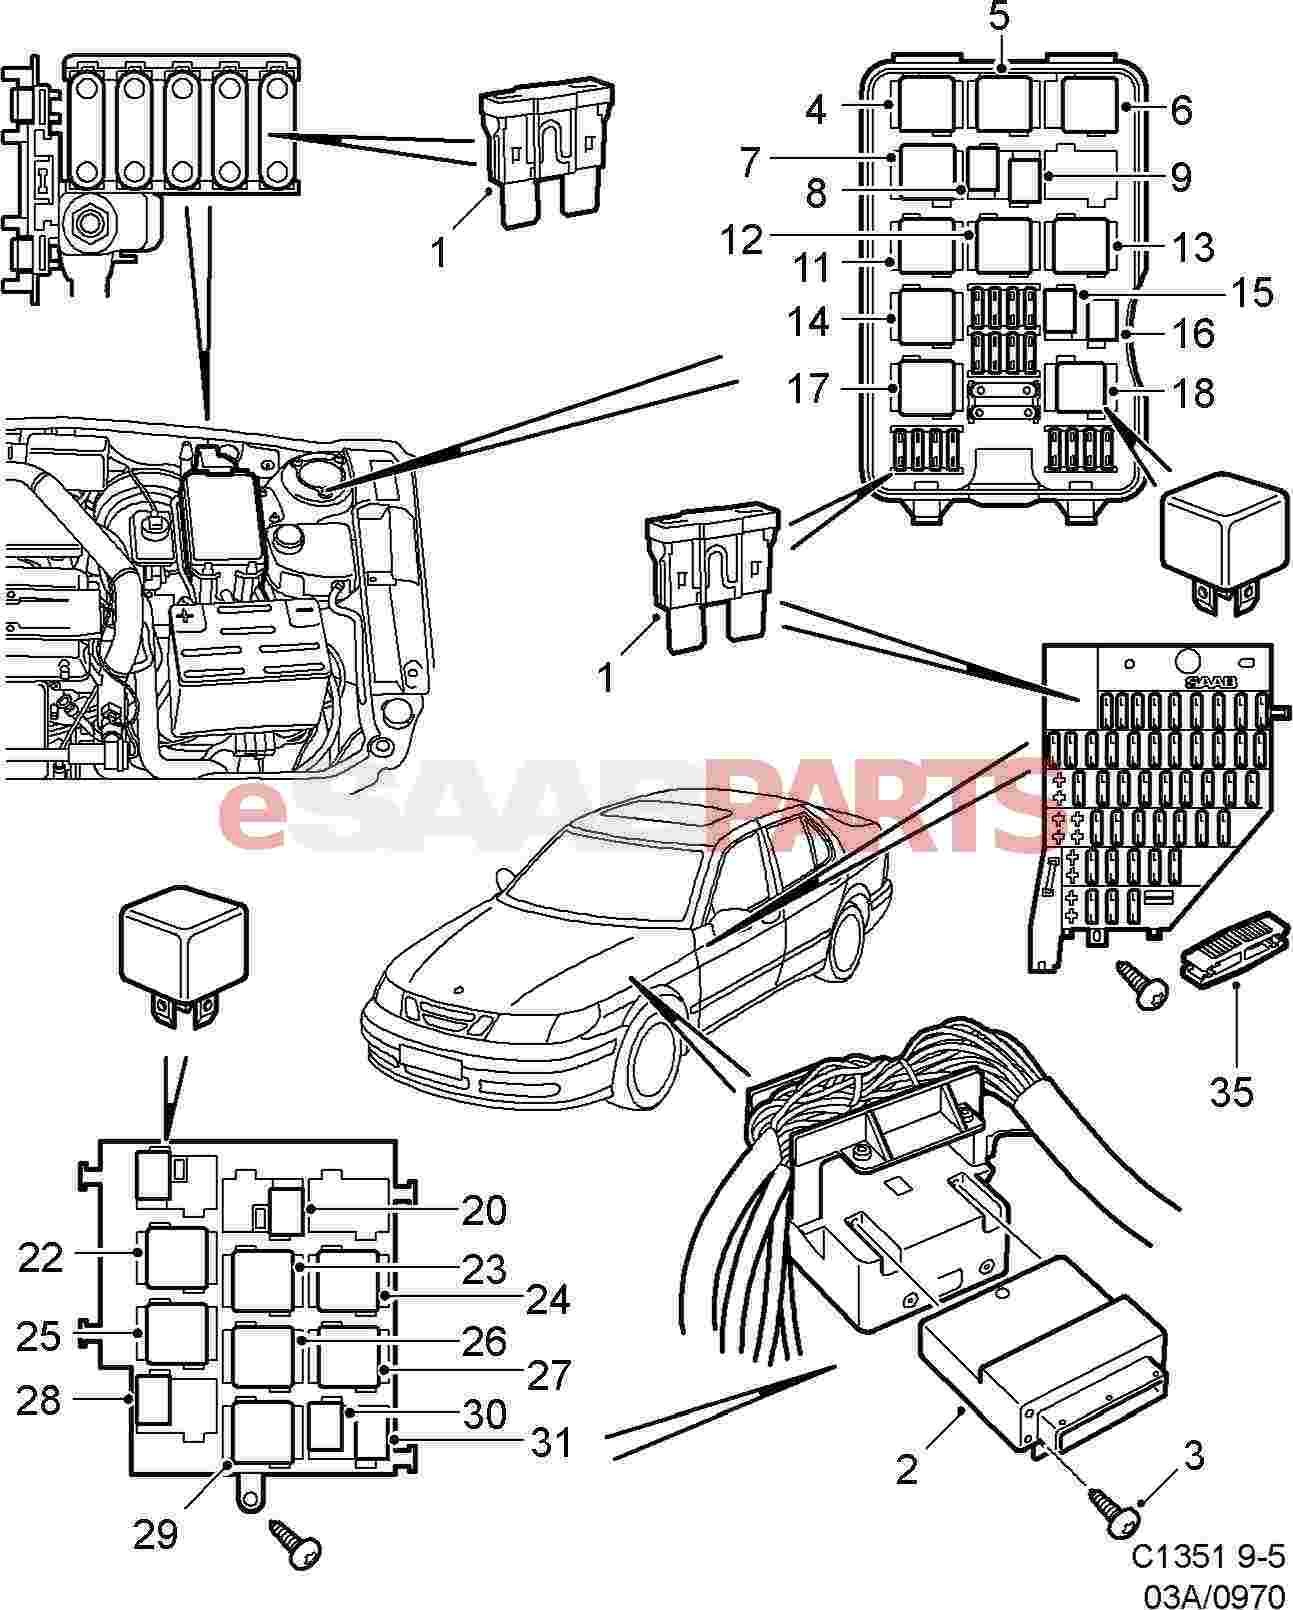 4947115 Saab Relay Genuine Parts From Dice Wiring Diagram Image 30